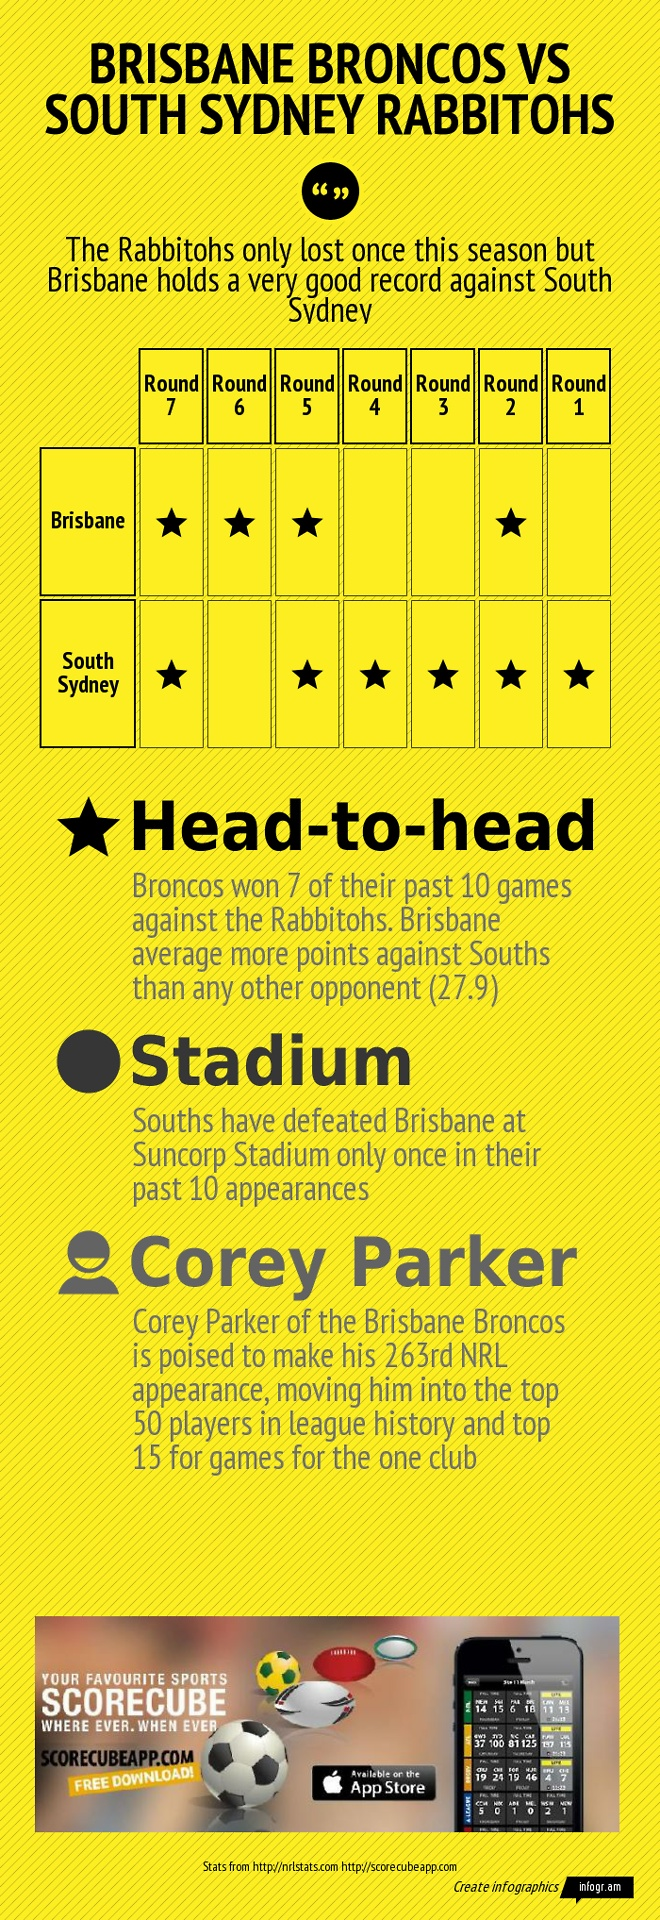 Preview of the Brisbane Broncos vs South Sydney Rabbitohs NRL - National Rugby League game tomorrow May 3, 2013.  Download the ScoreCube App to be updated on all the NRL games. Scores, stats and locals schedule available of the ScoreCube App. http://scorecubeapp.com/  Download the app here: itunes download link  Follow us on Twitter: @scorecubeapp  We are also on Facebook:  https://www.facebook.com/scorecube